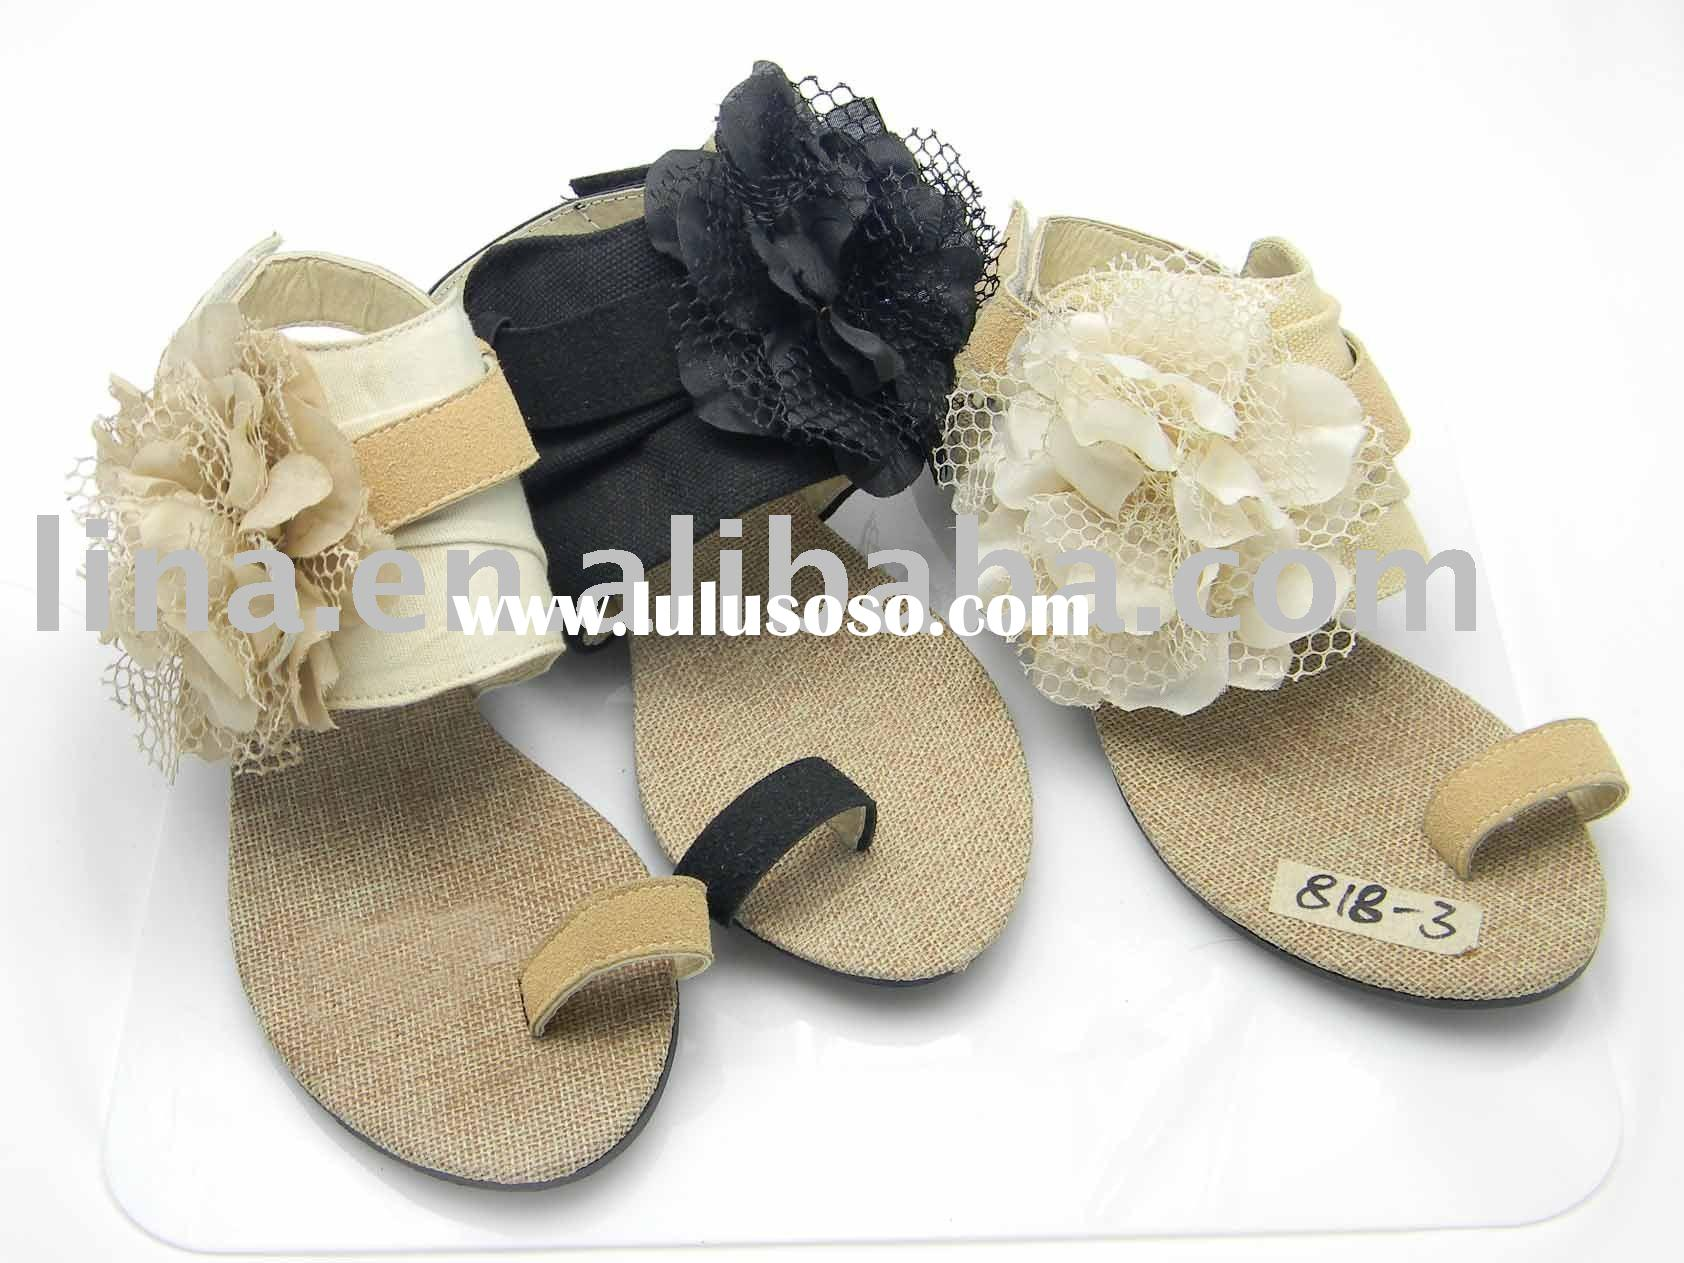 2011 the newest style ladies' leather shoes sandals/2011 ladies flat sandals/2011 ladies san